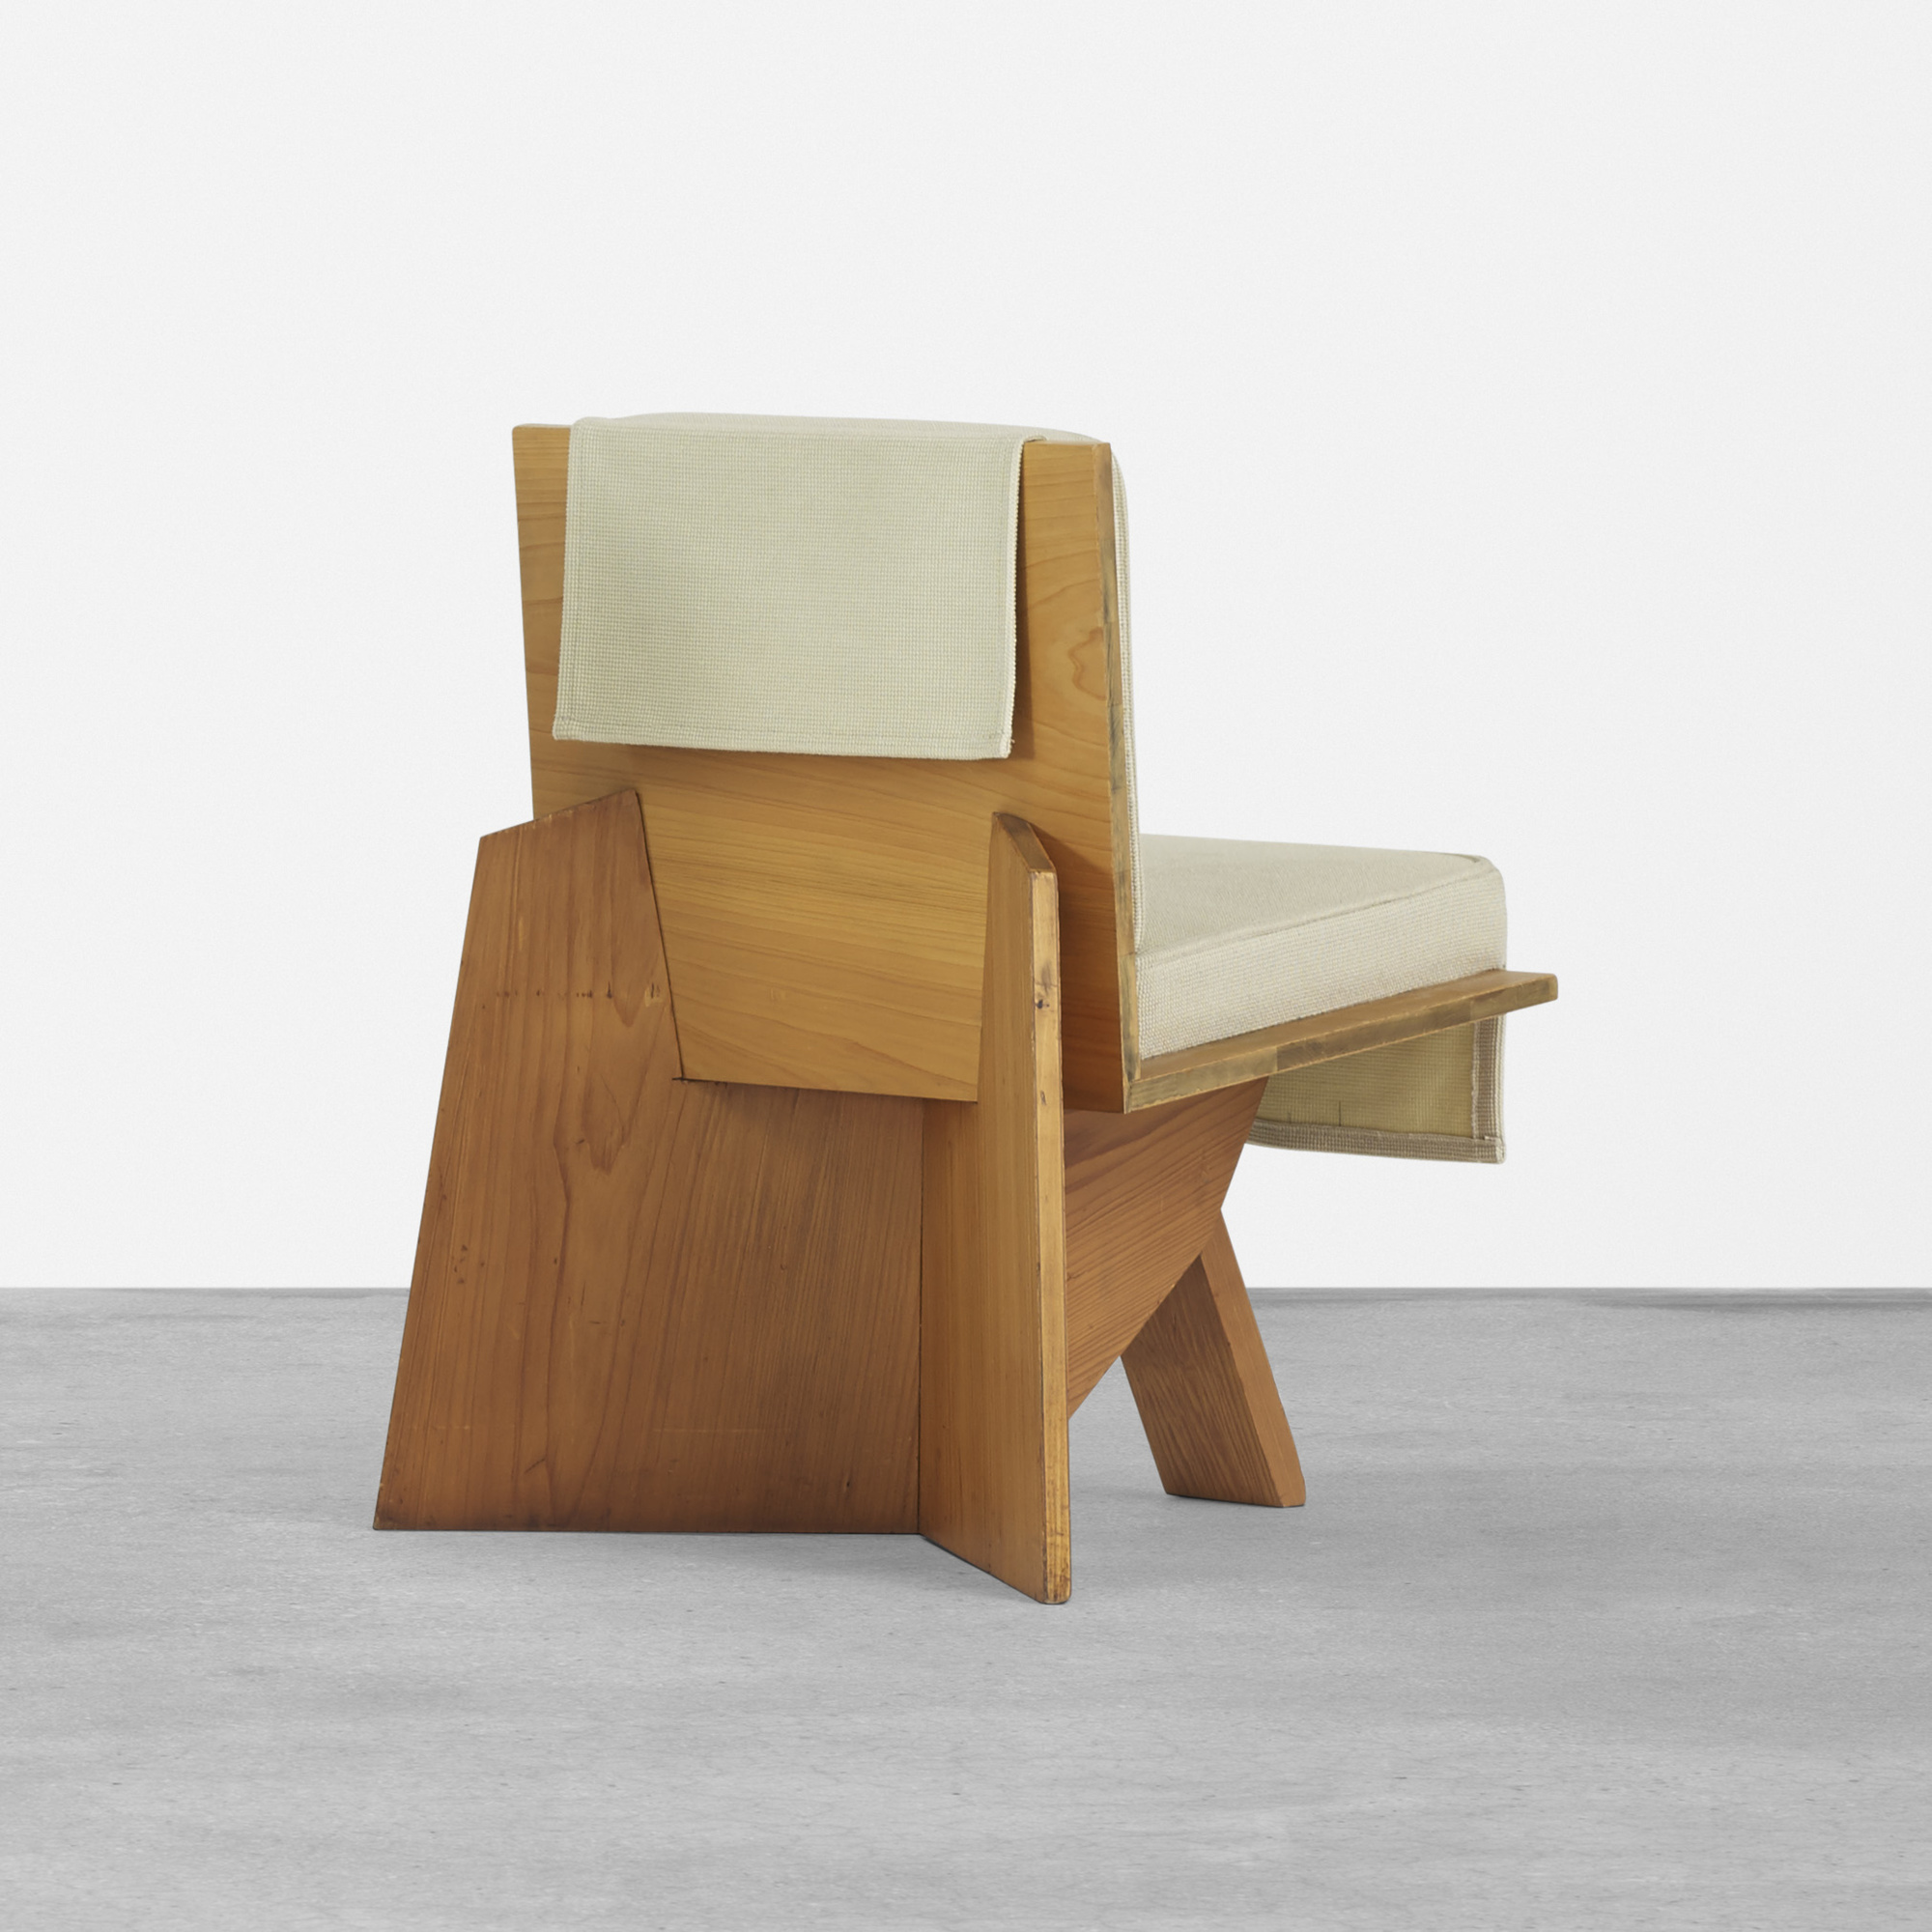 Furniture Design Kansas City 148: frank lloyd wright / pair of lounge chairs from the clarence